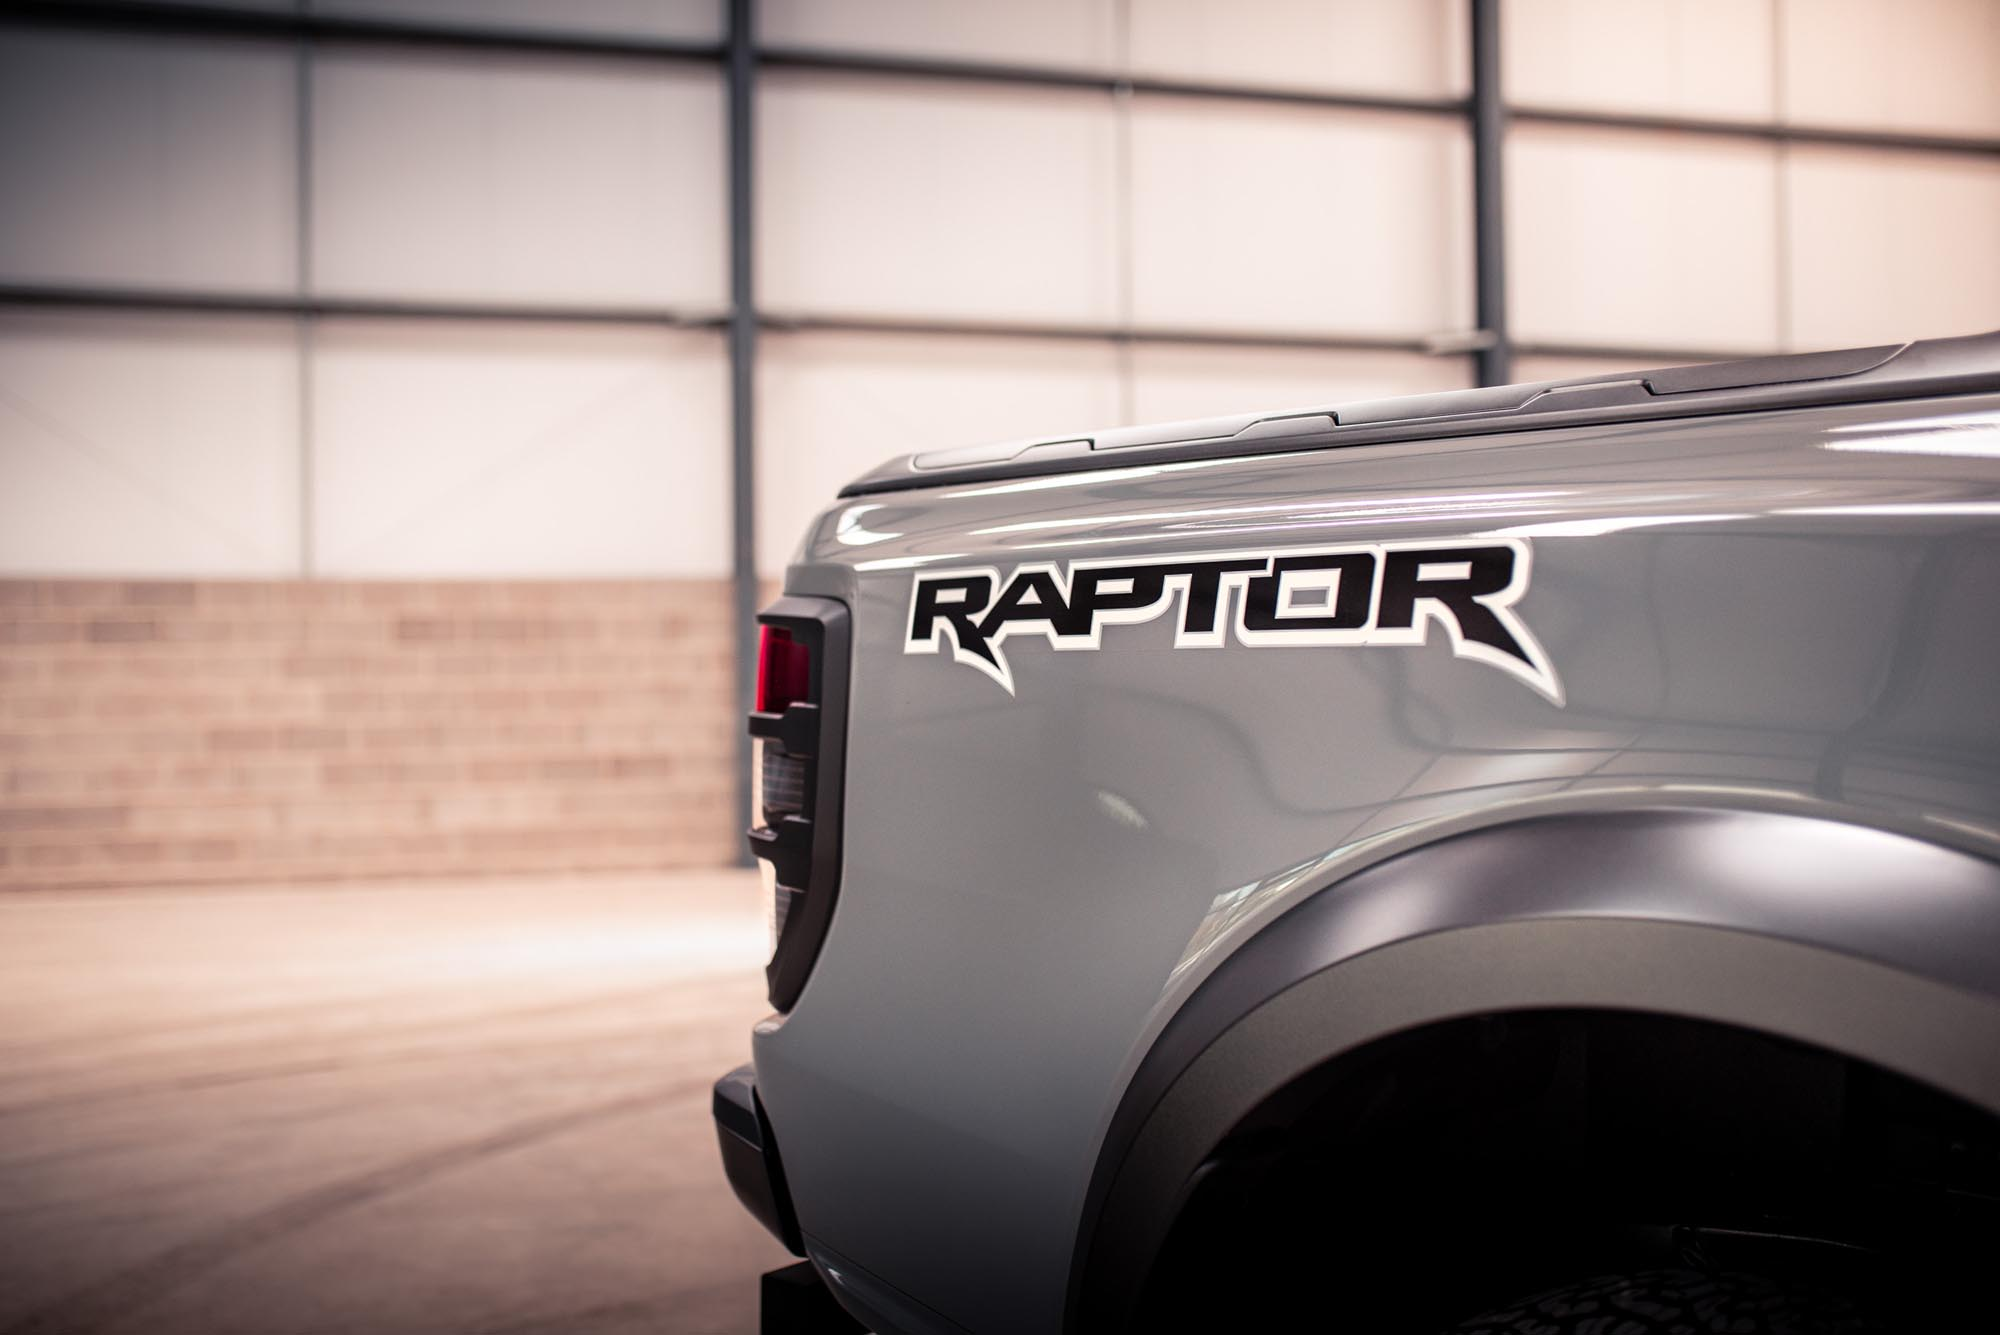 Ford Raptor stock photography for 4x4 AT Northallerton